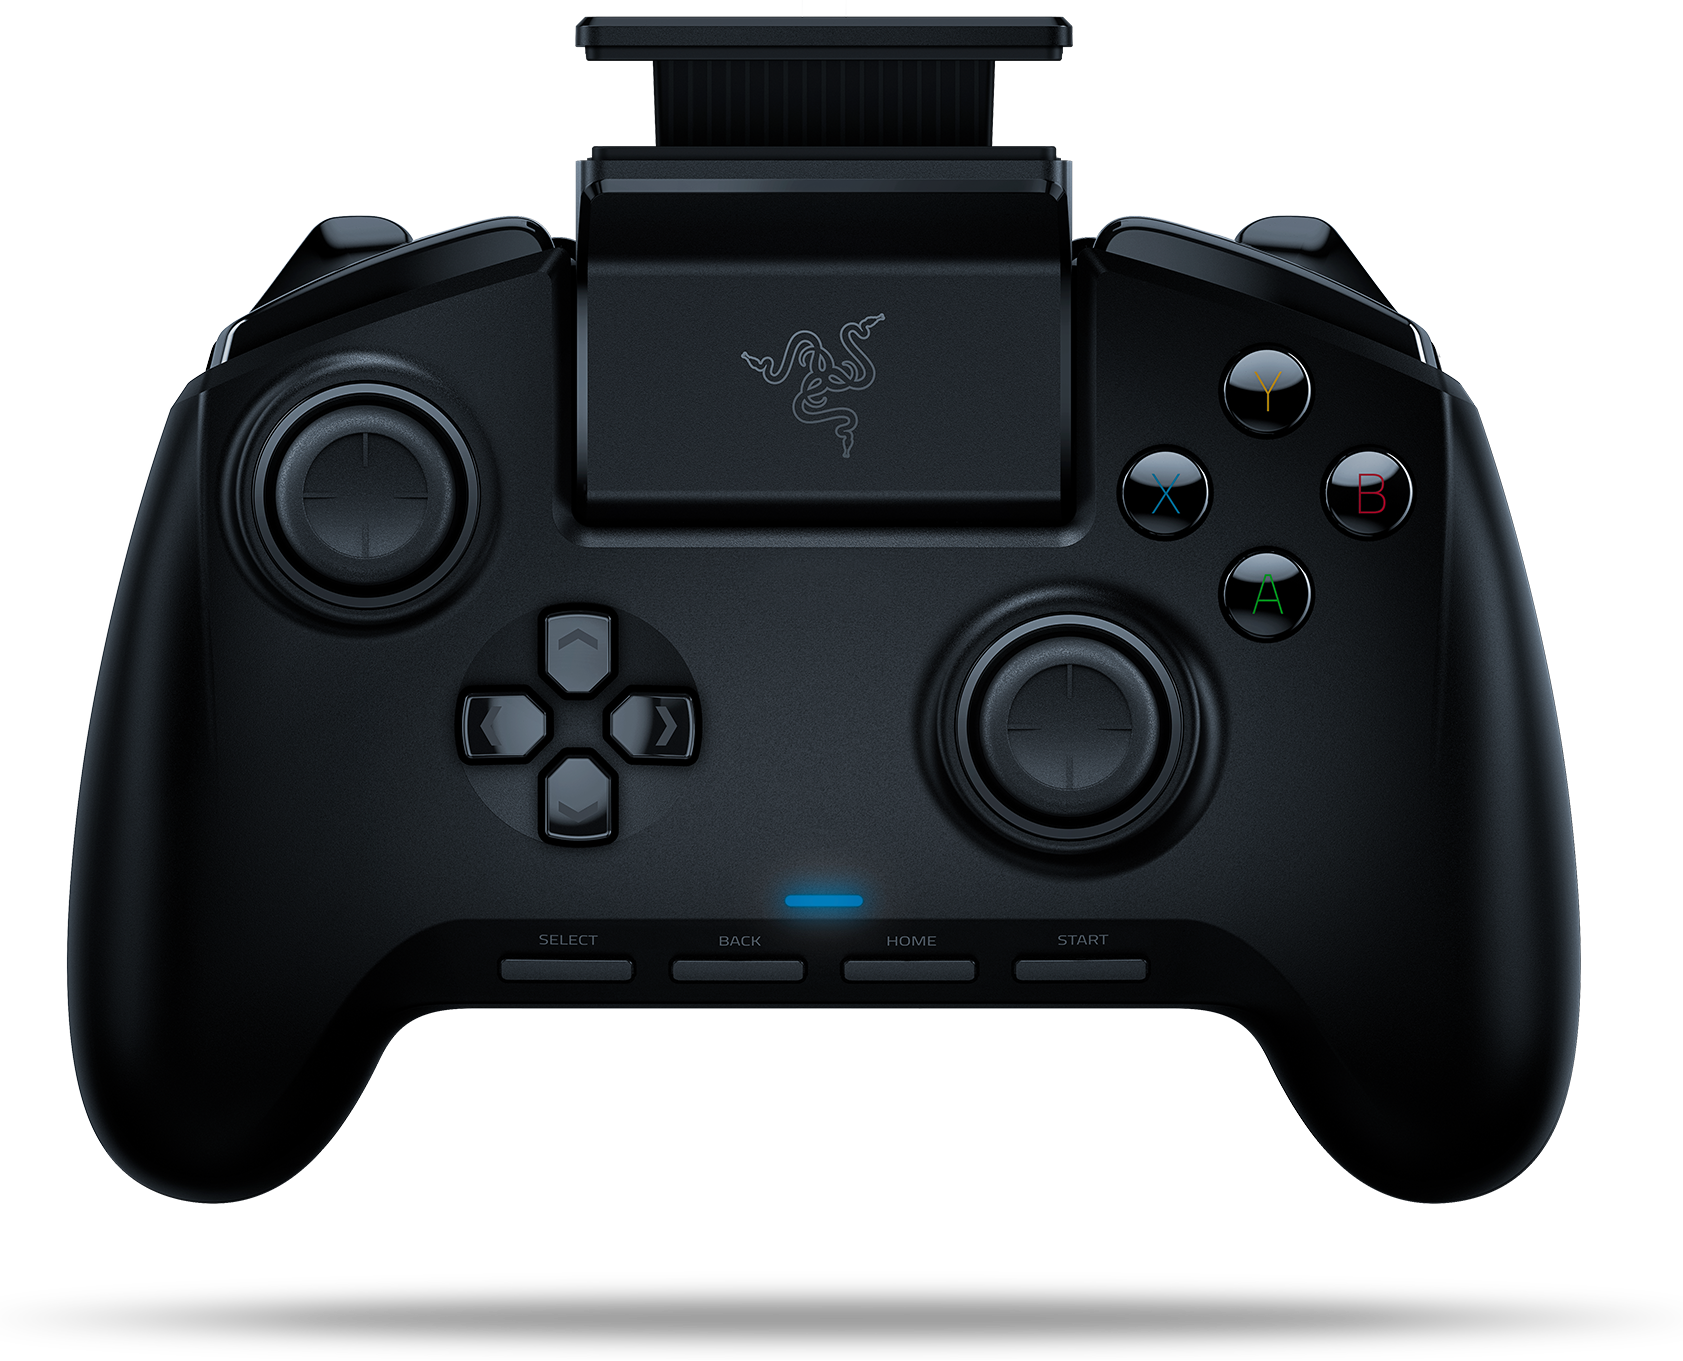 Buy Razer Raiju Mobile Gaming Controller For Android Microsoft Store In this video we turn a snapdragon 855 oneplus 7 pro smartphone into the ultimate emulation console for retrogames and newer games alike. buy razer raiju mobile gaming controller for android microsoft store